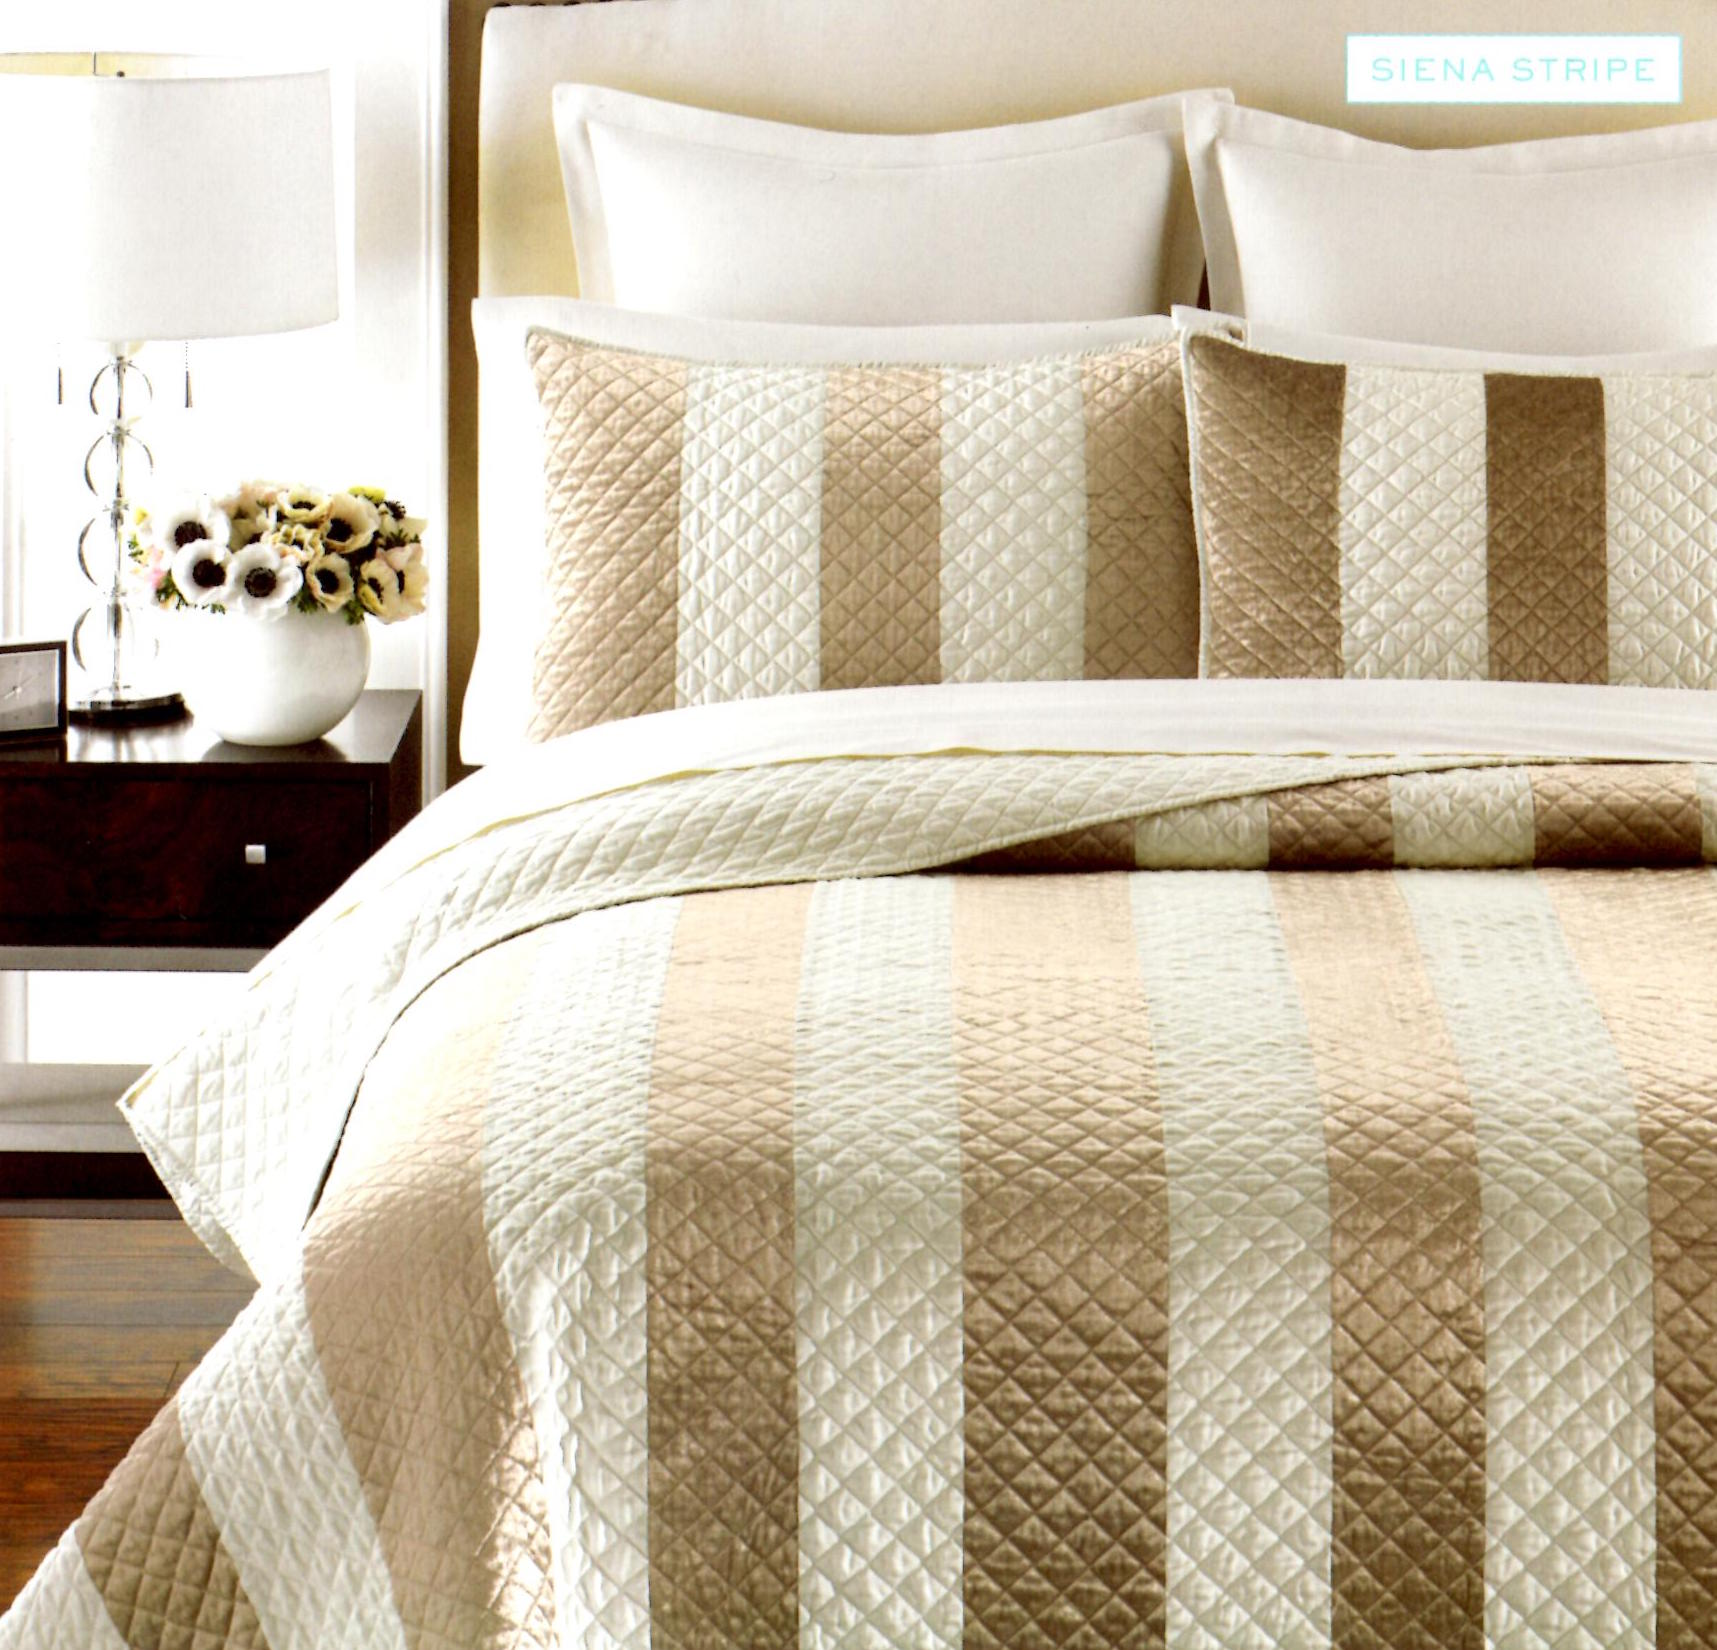 Martha Stewart Siena Stripe Twin Quilt Set SOC 1099